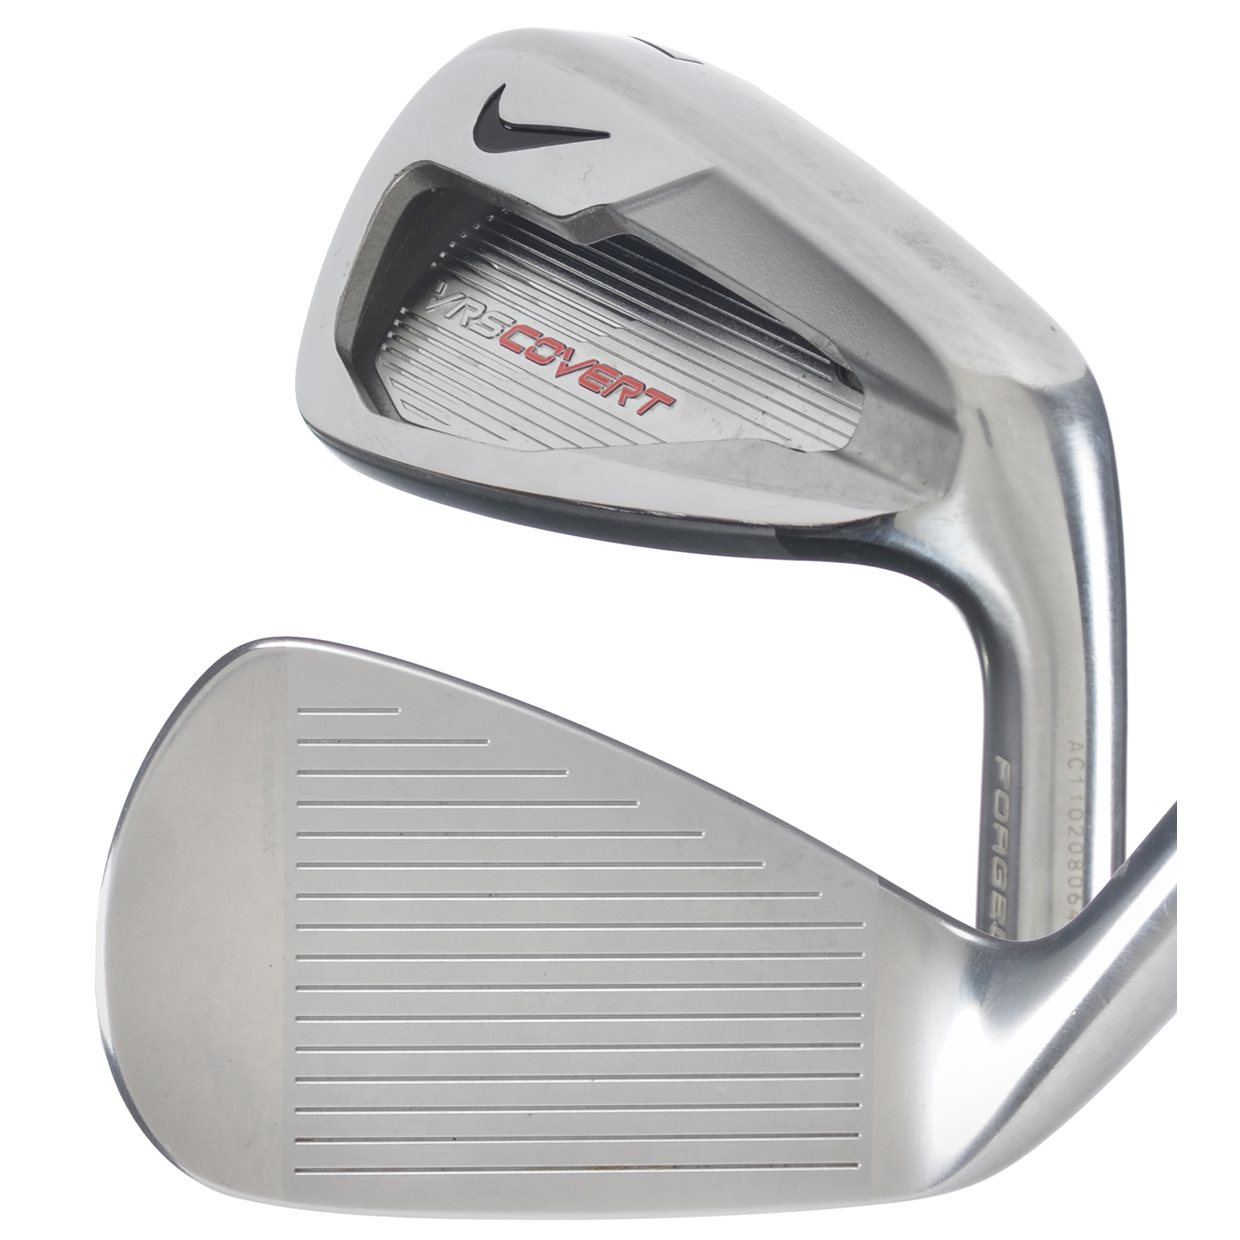 b8fdd70fd93b Nike VR-S Covert 2.0 Forged Iron Set 4-PW Used Golf Club at ...